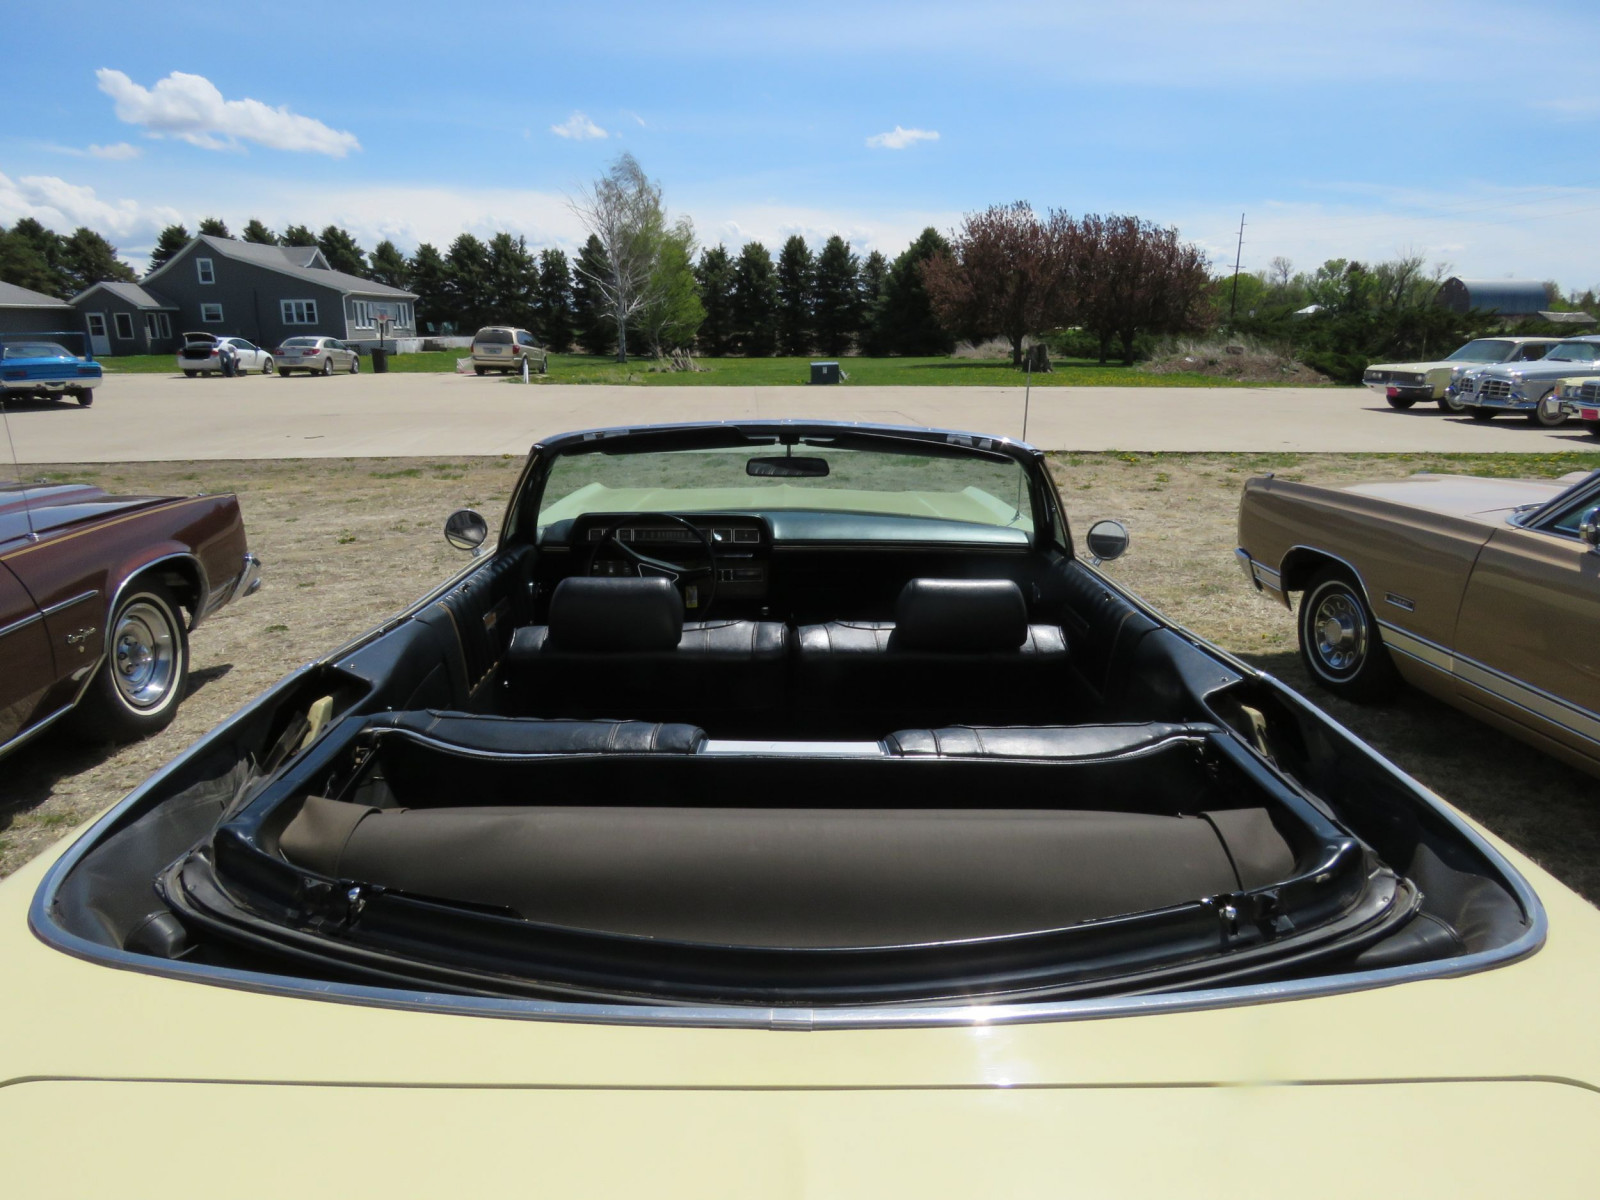 Rare 1970 Dodge Polara Convertible - Image 9